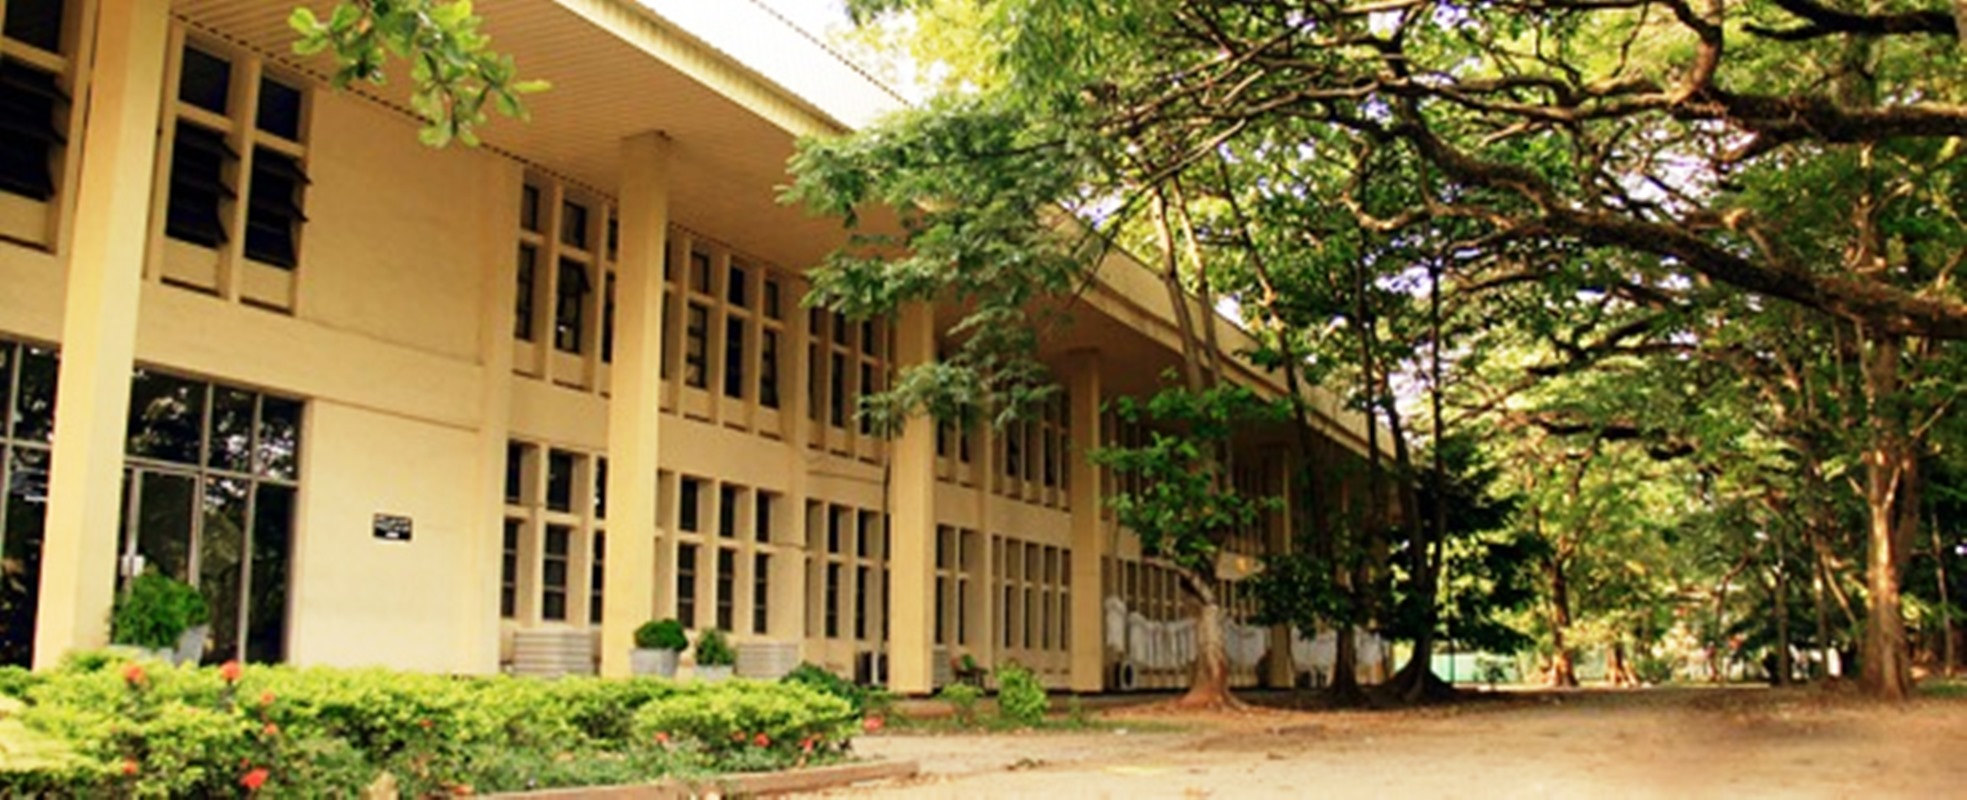 Faculty of Law   University of Colombo